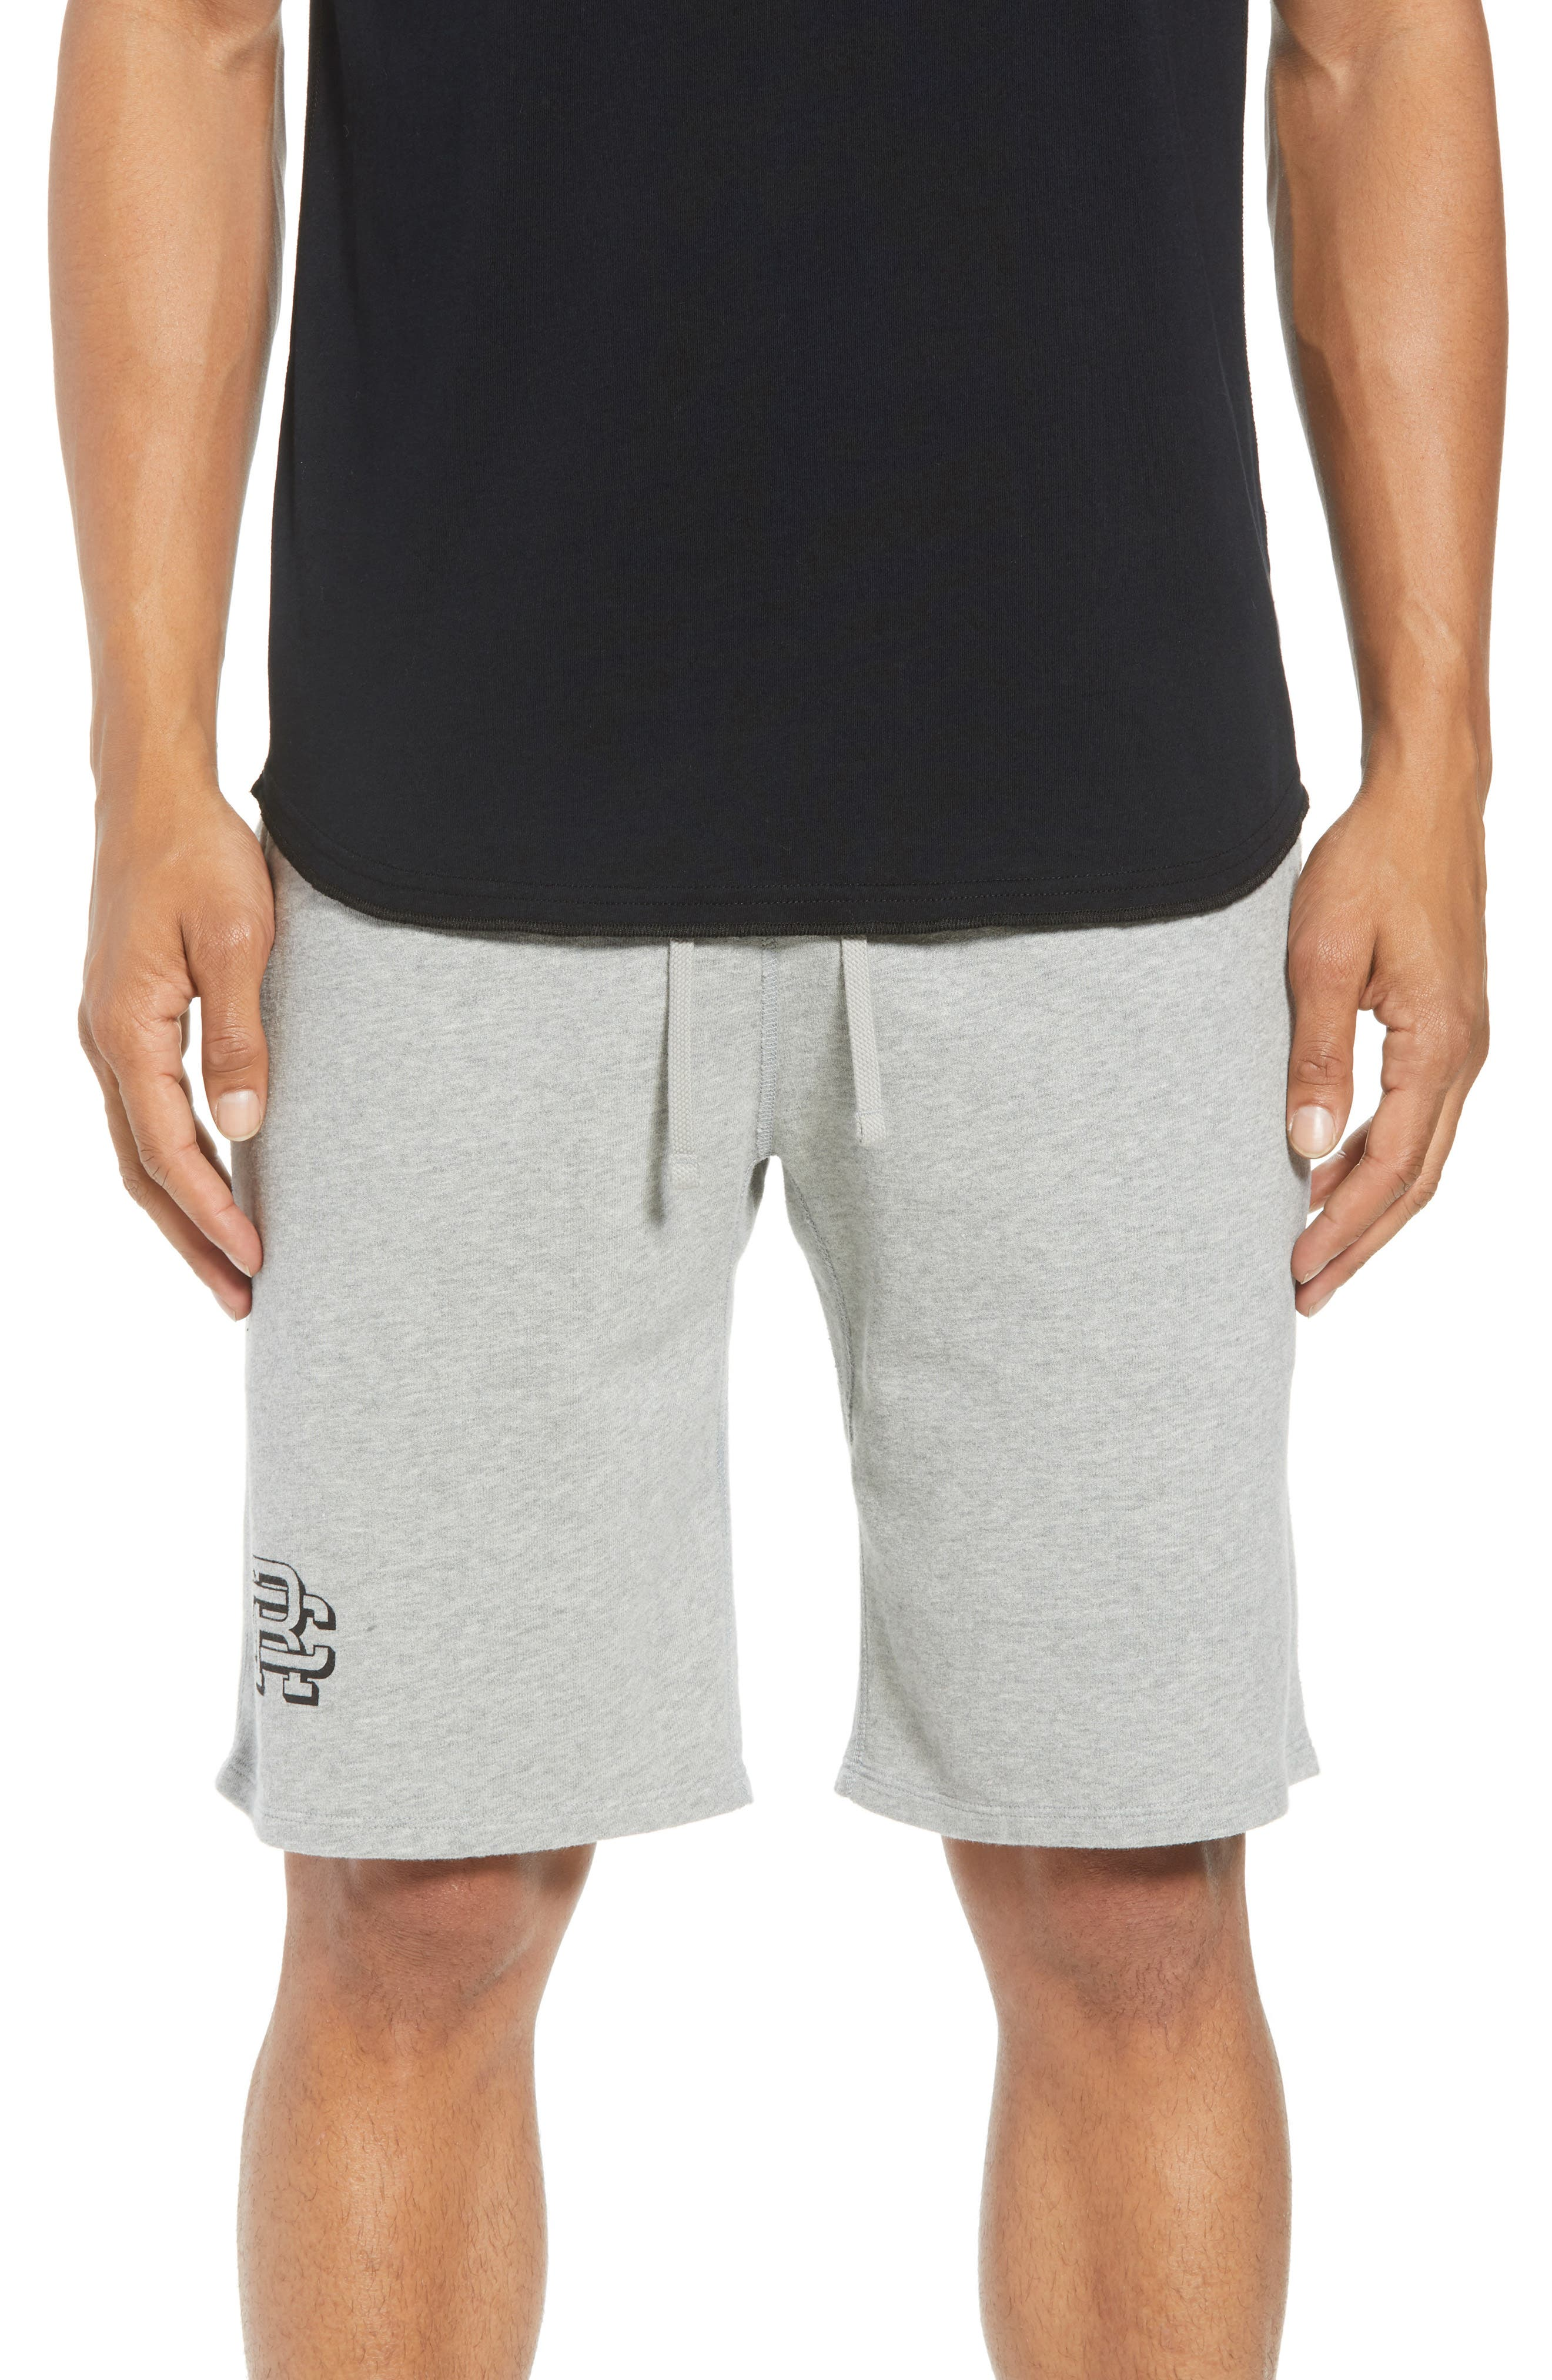 REIGNING CHAMP Shorts Lightweight Classic Fit Knit Shorts in Heather Grey